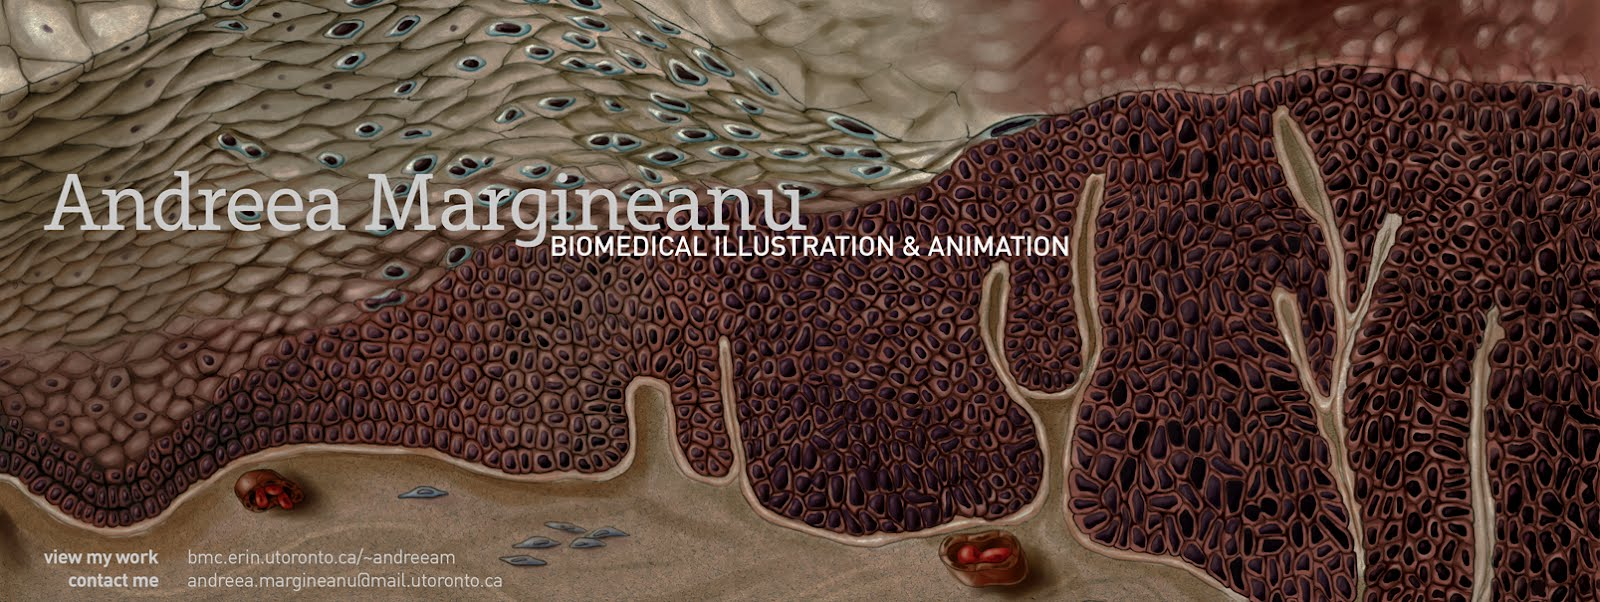 andreea margineanu: biomedical illustration and animation